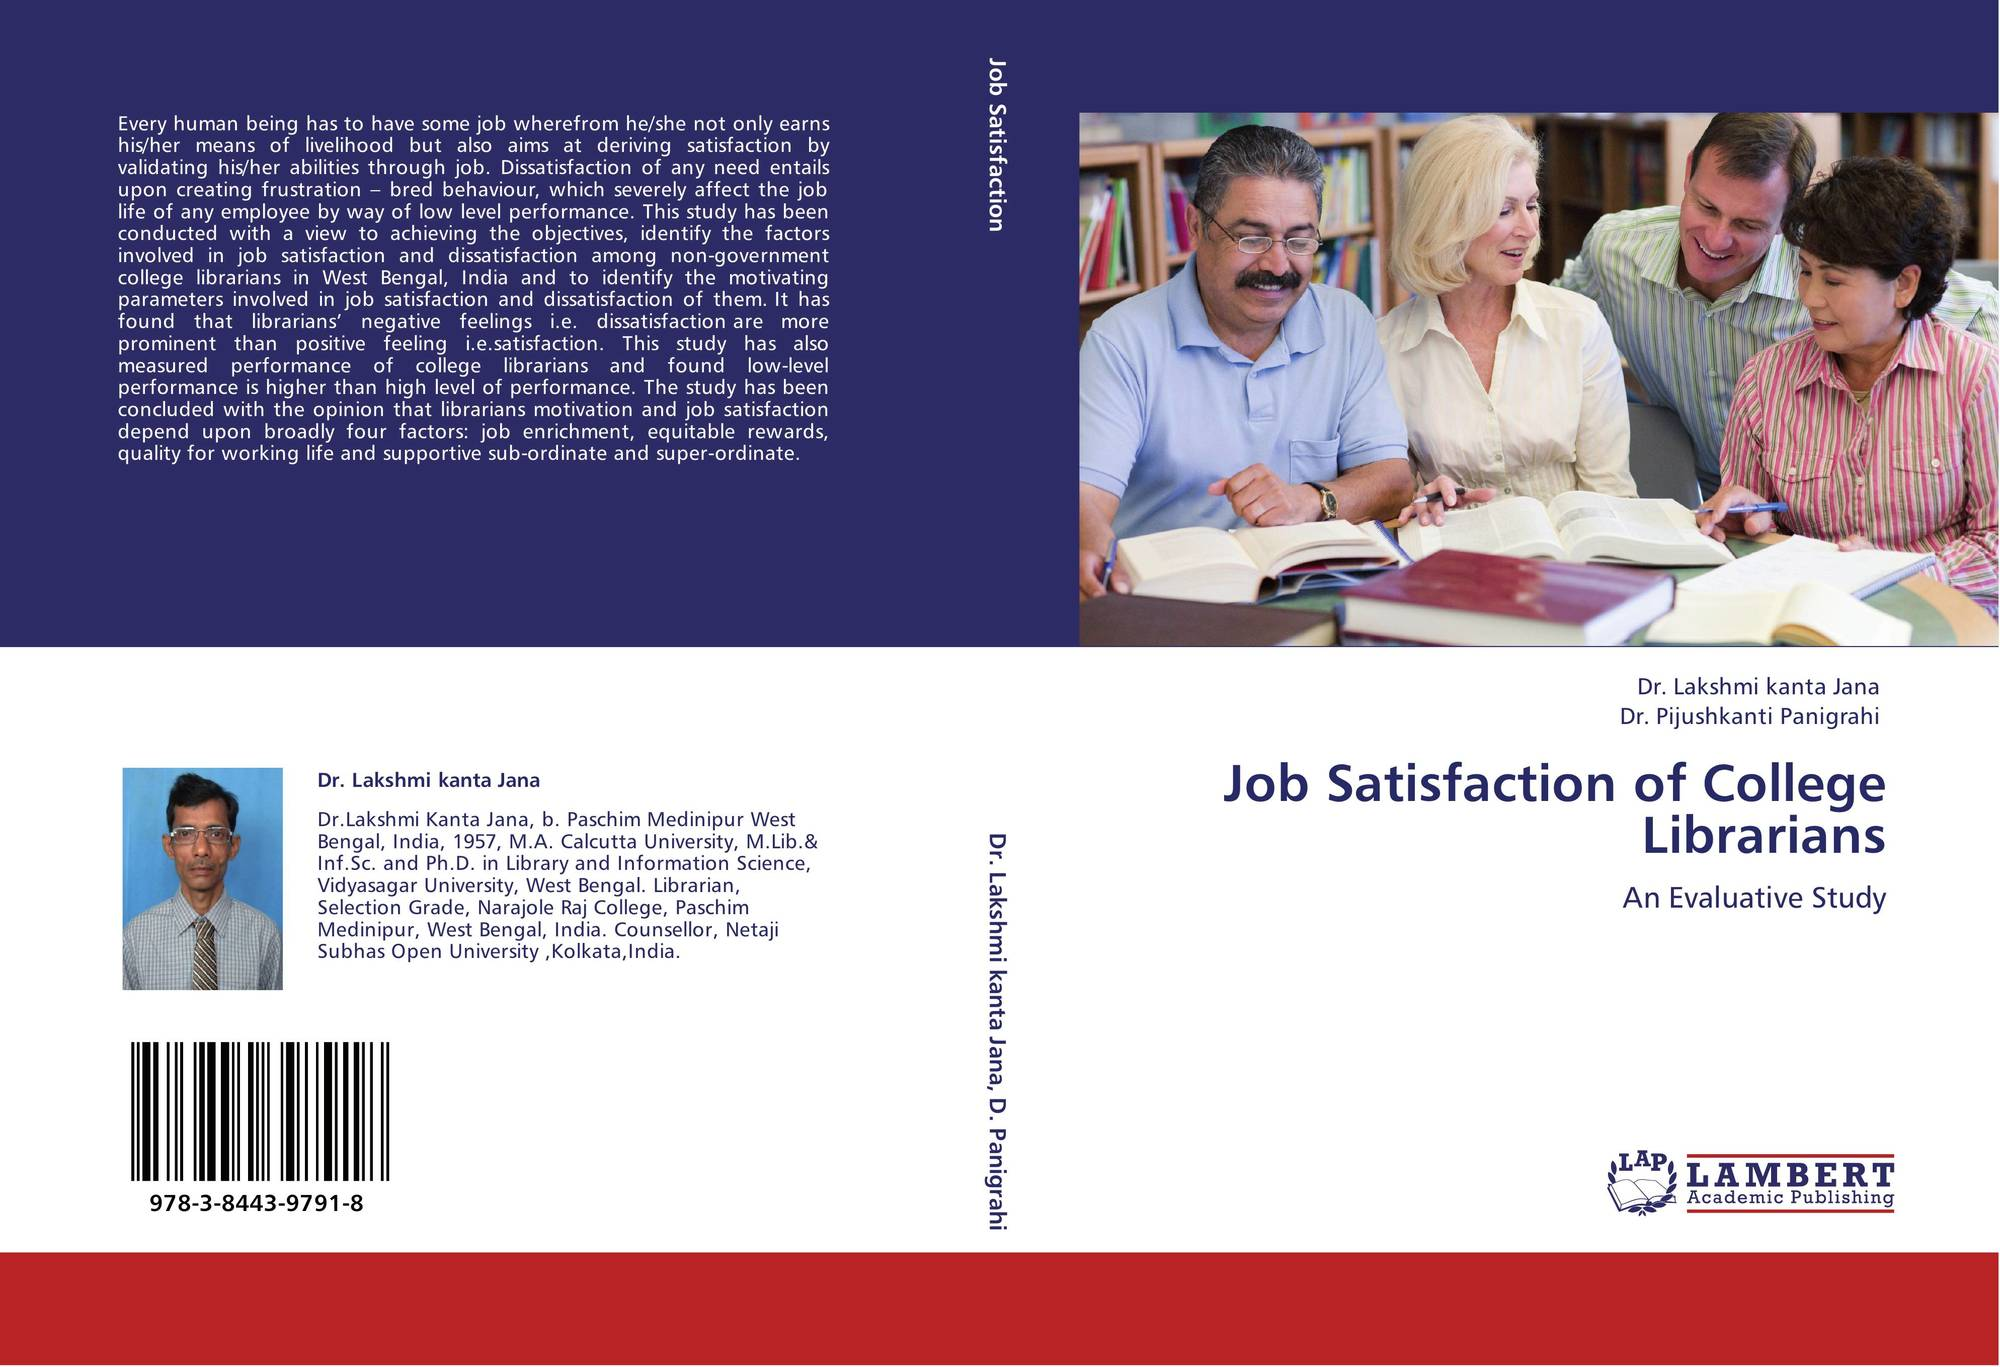 job satisfaction amoung academic This study examines the relationships between pay, promotion, fringe benefits, working condition, support of research, support of teaching, gender and job.